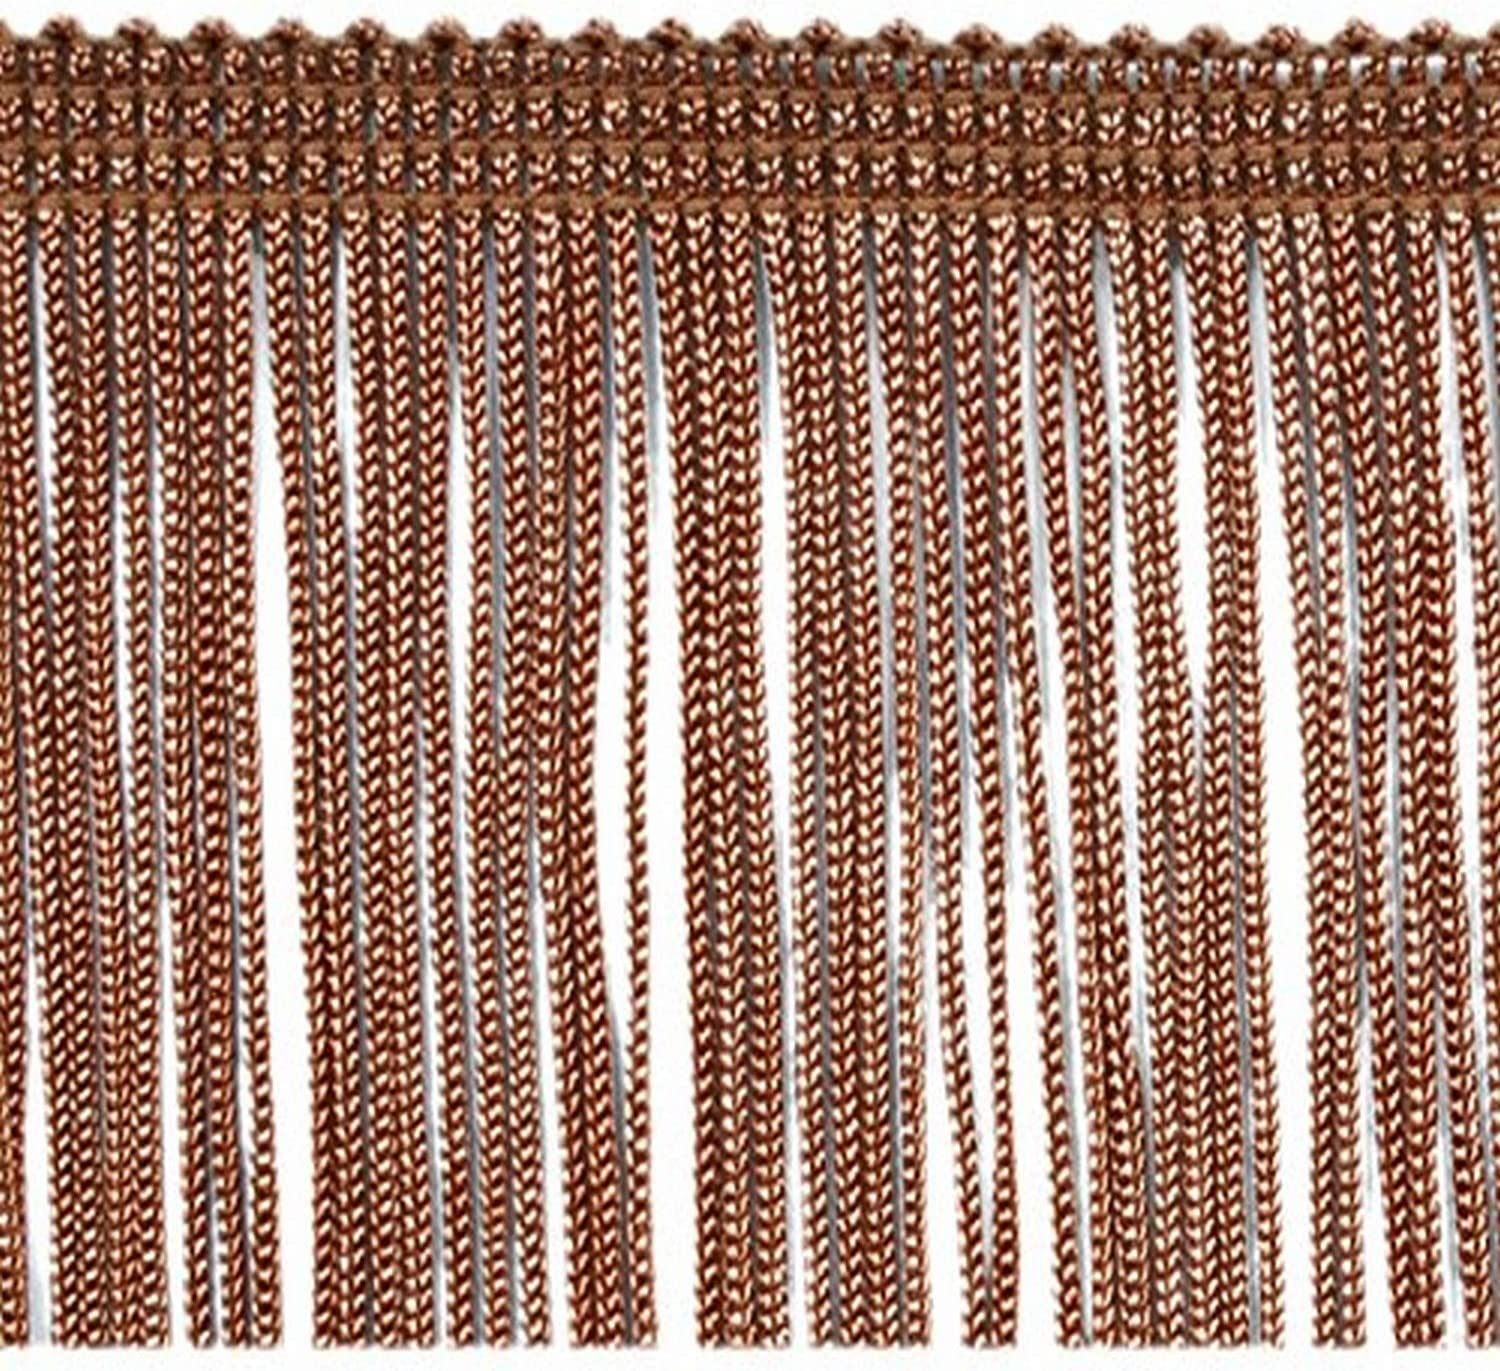 Expo International 5 Yards of 2 Chainette Fringe Trim Cocoa 5 yd x 2